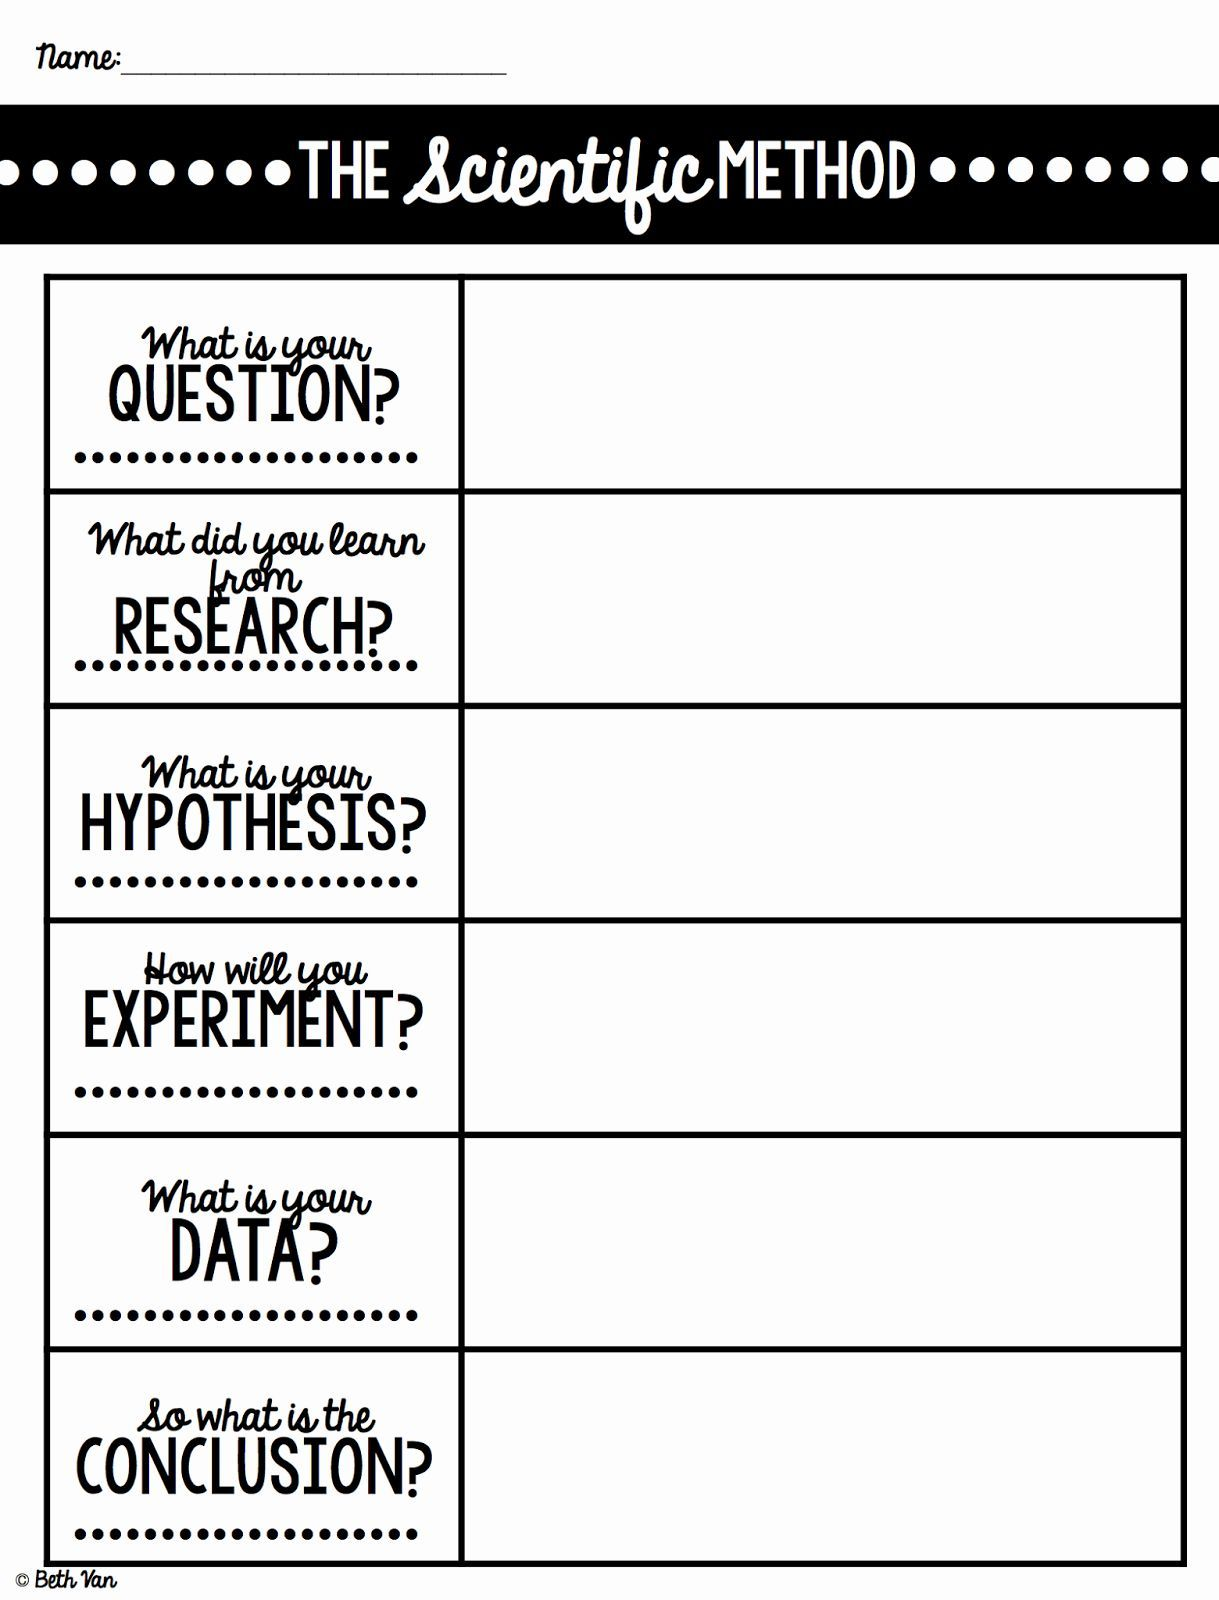 Scientific Method Steps Worksheet Beautiful